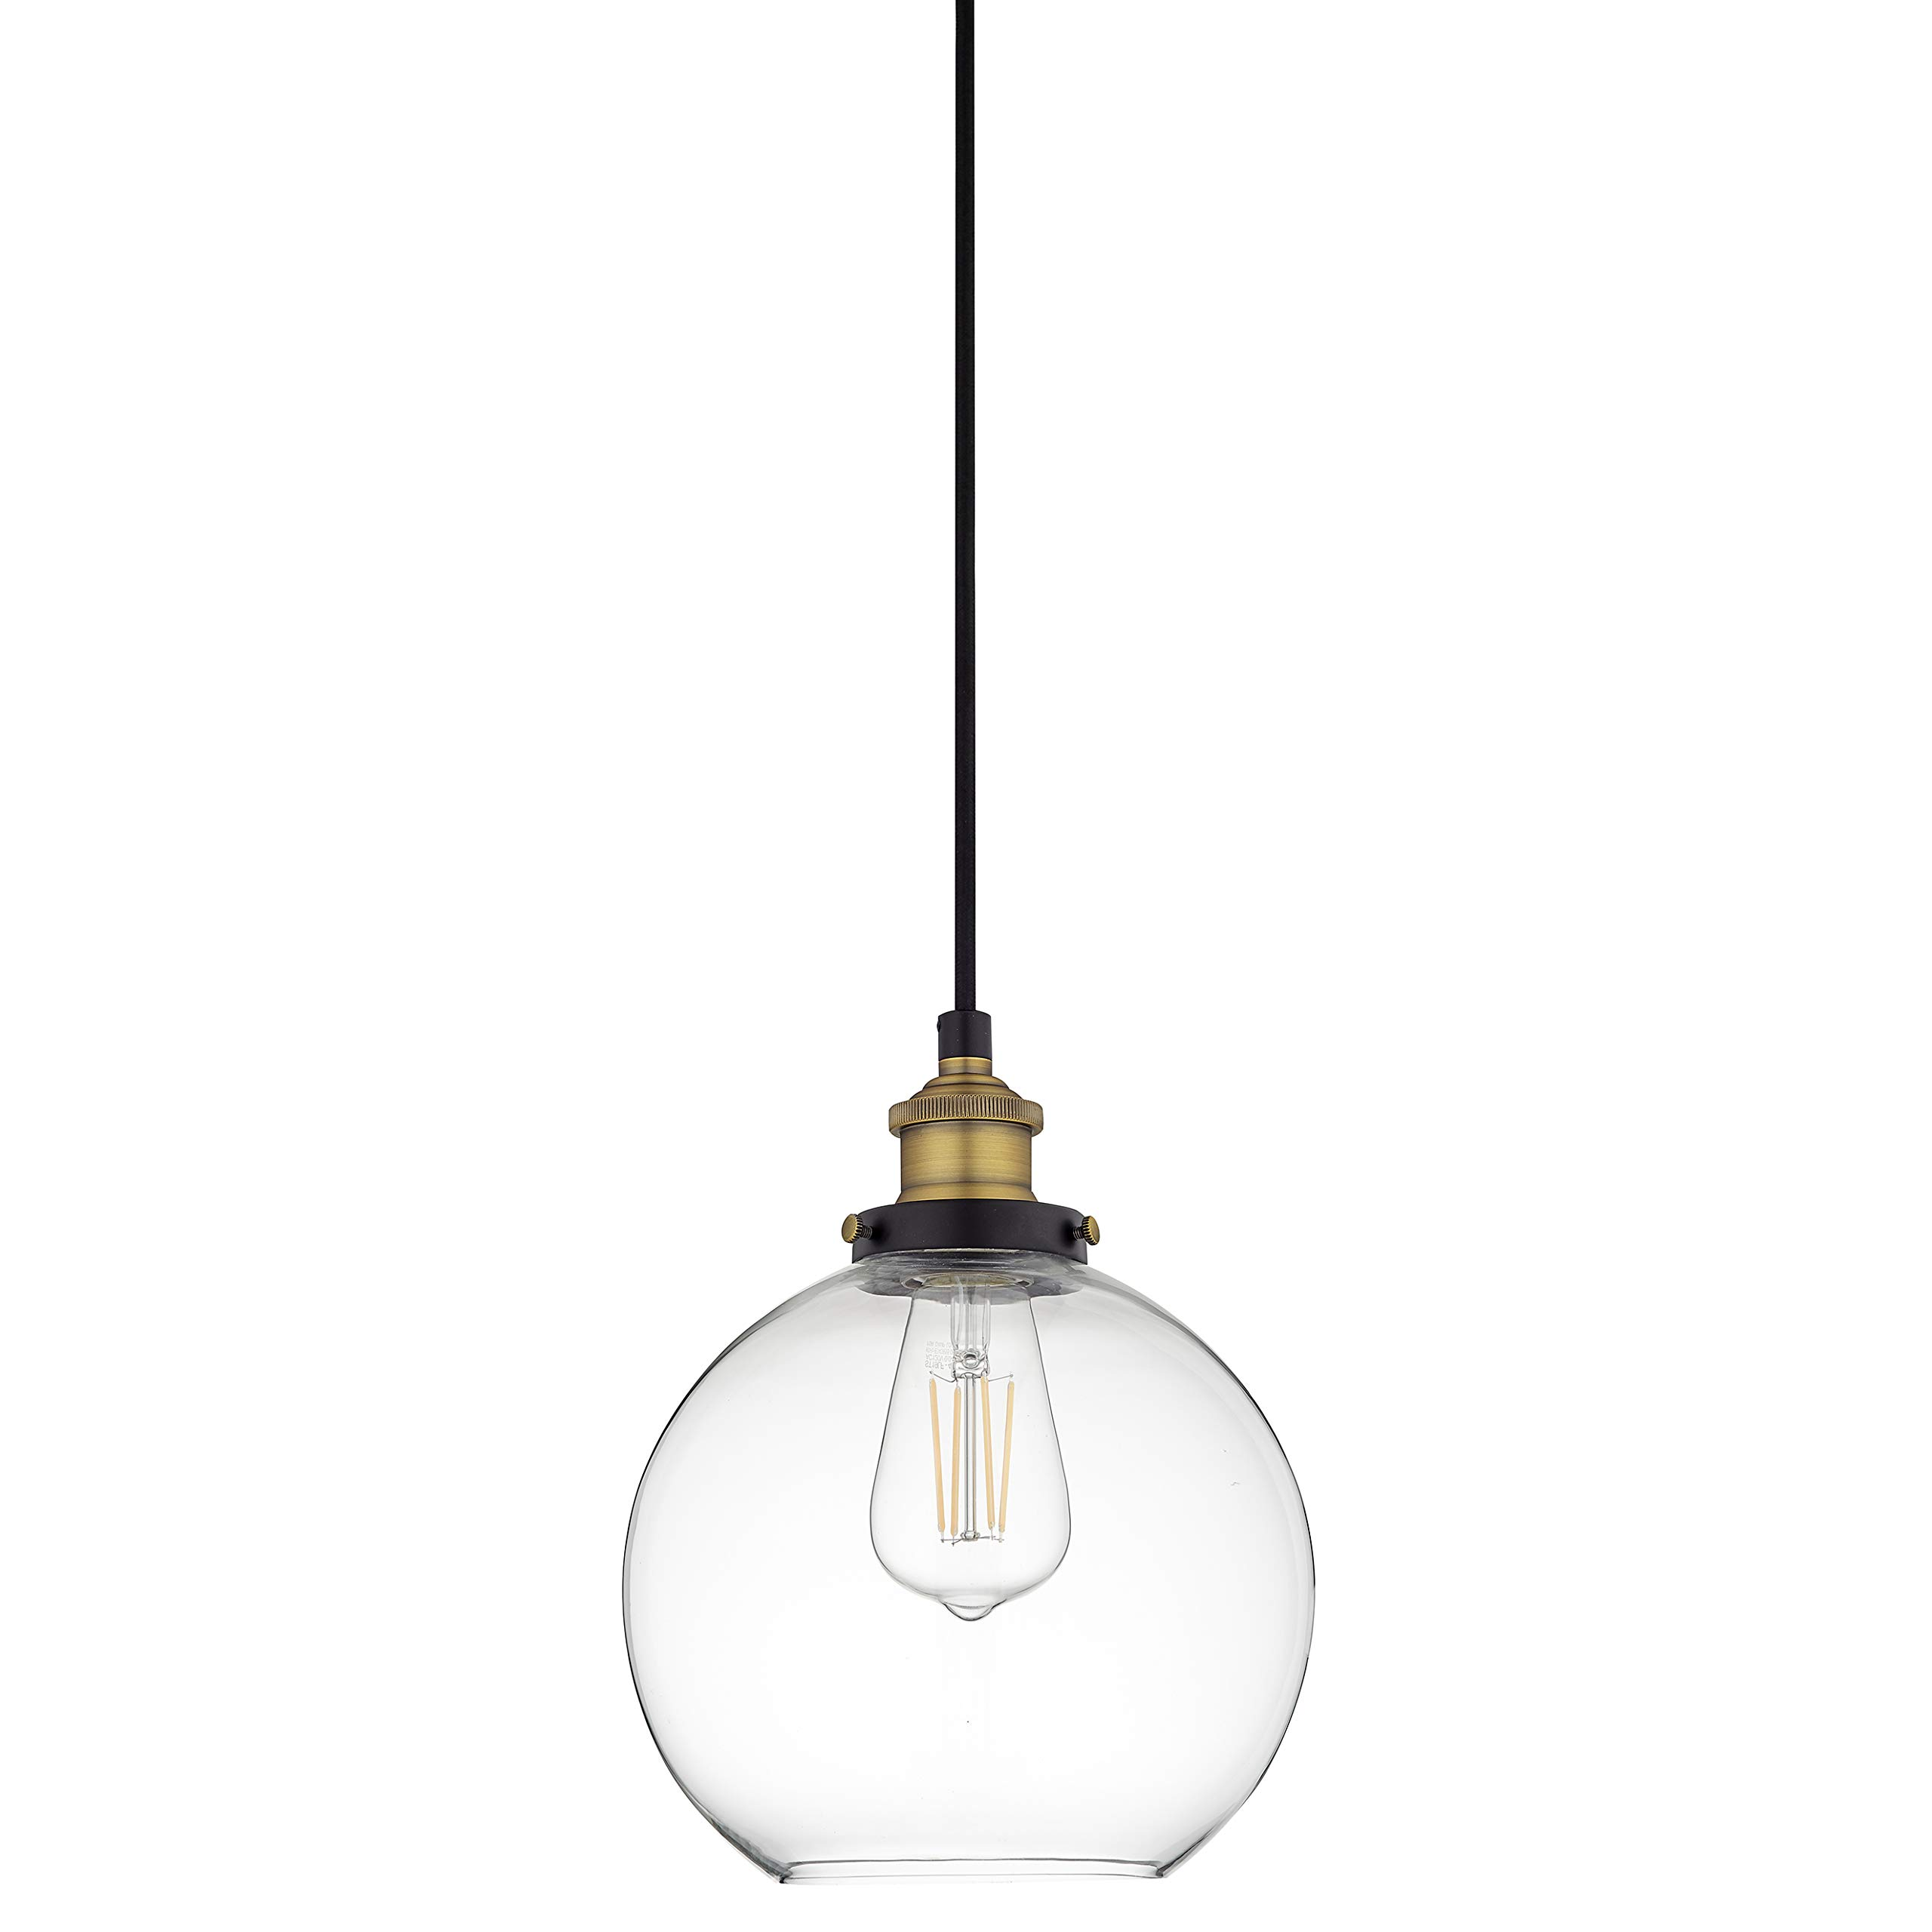 Primo Industrial Kitchen Pendant Light - Antique Brass Hanging Fixture - Linea di Liara LL-P429-AB